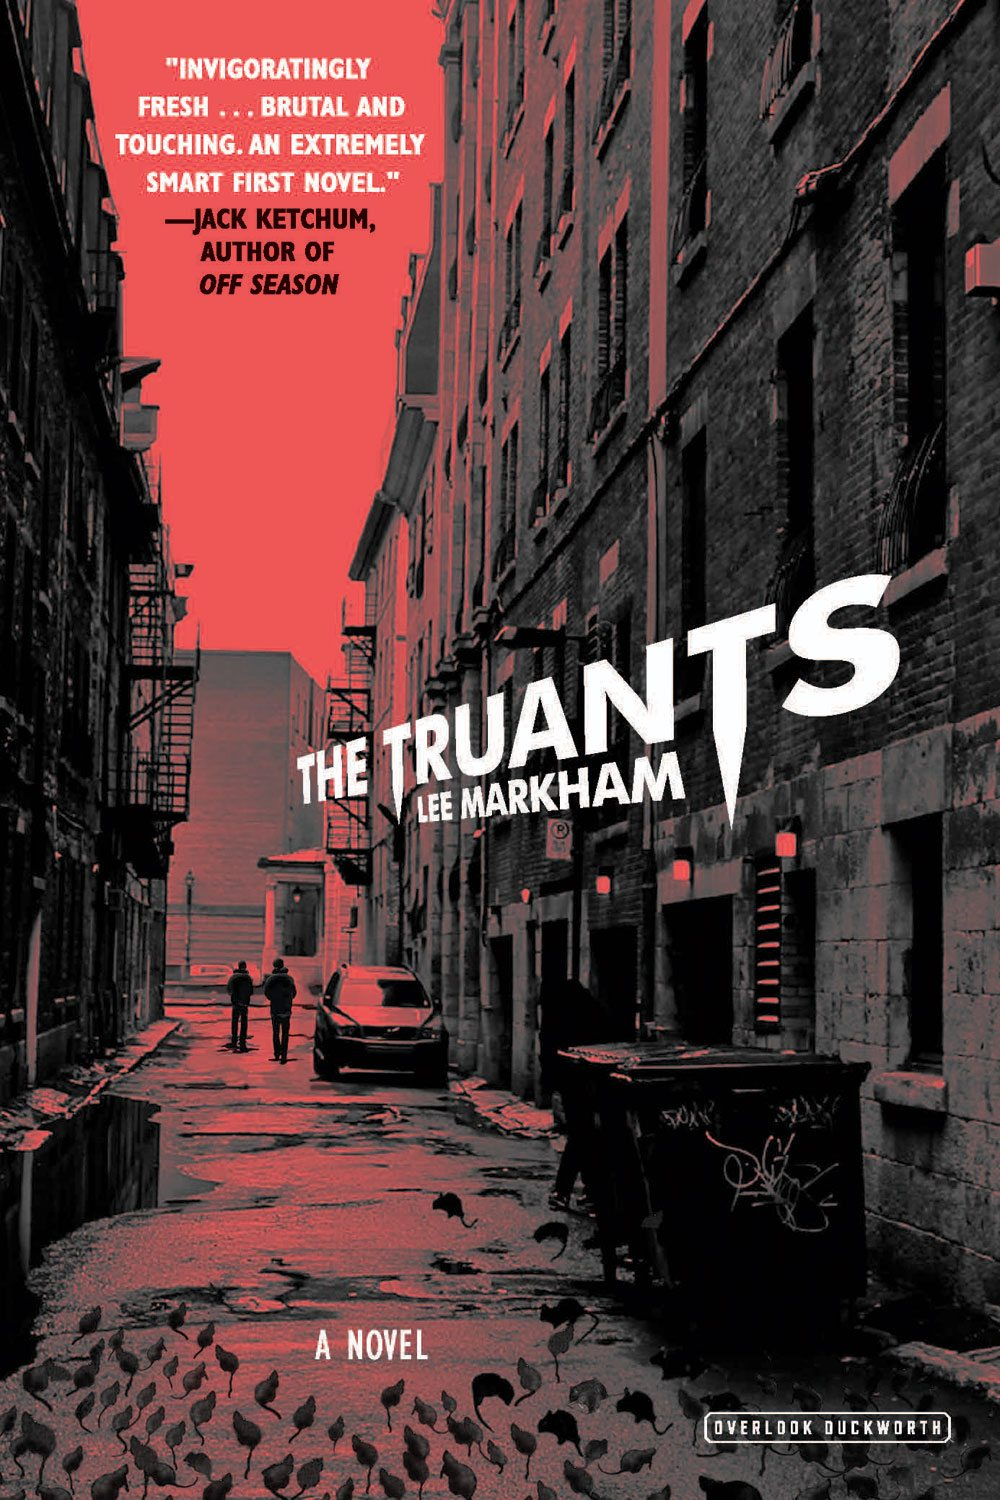 Truants HC Cover - Guest Post: Author Lee Markham on Why The Truants Isn't 'Just' a Vampire Story